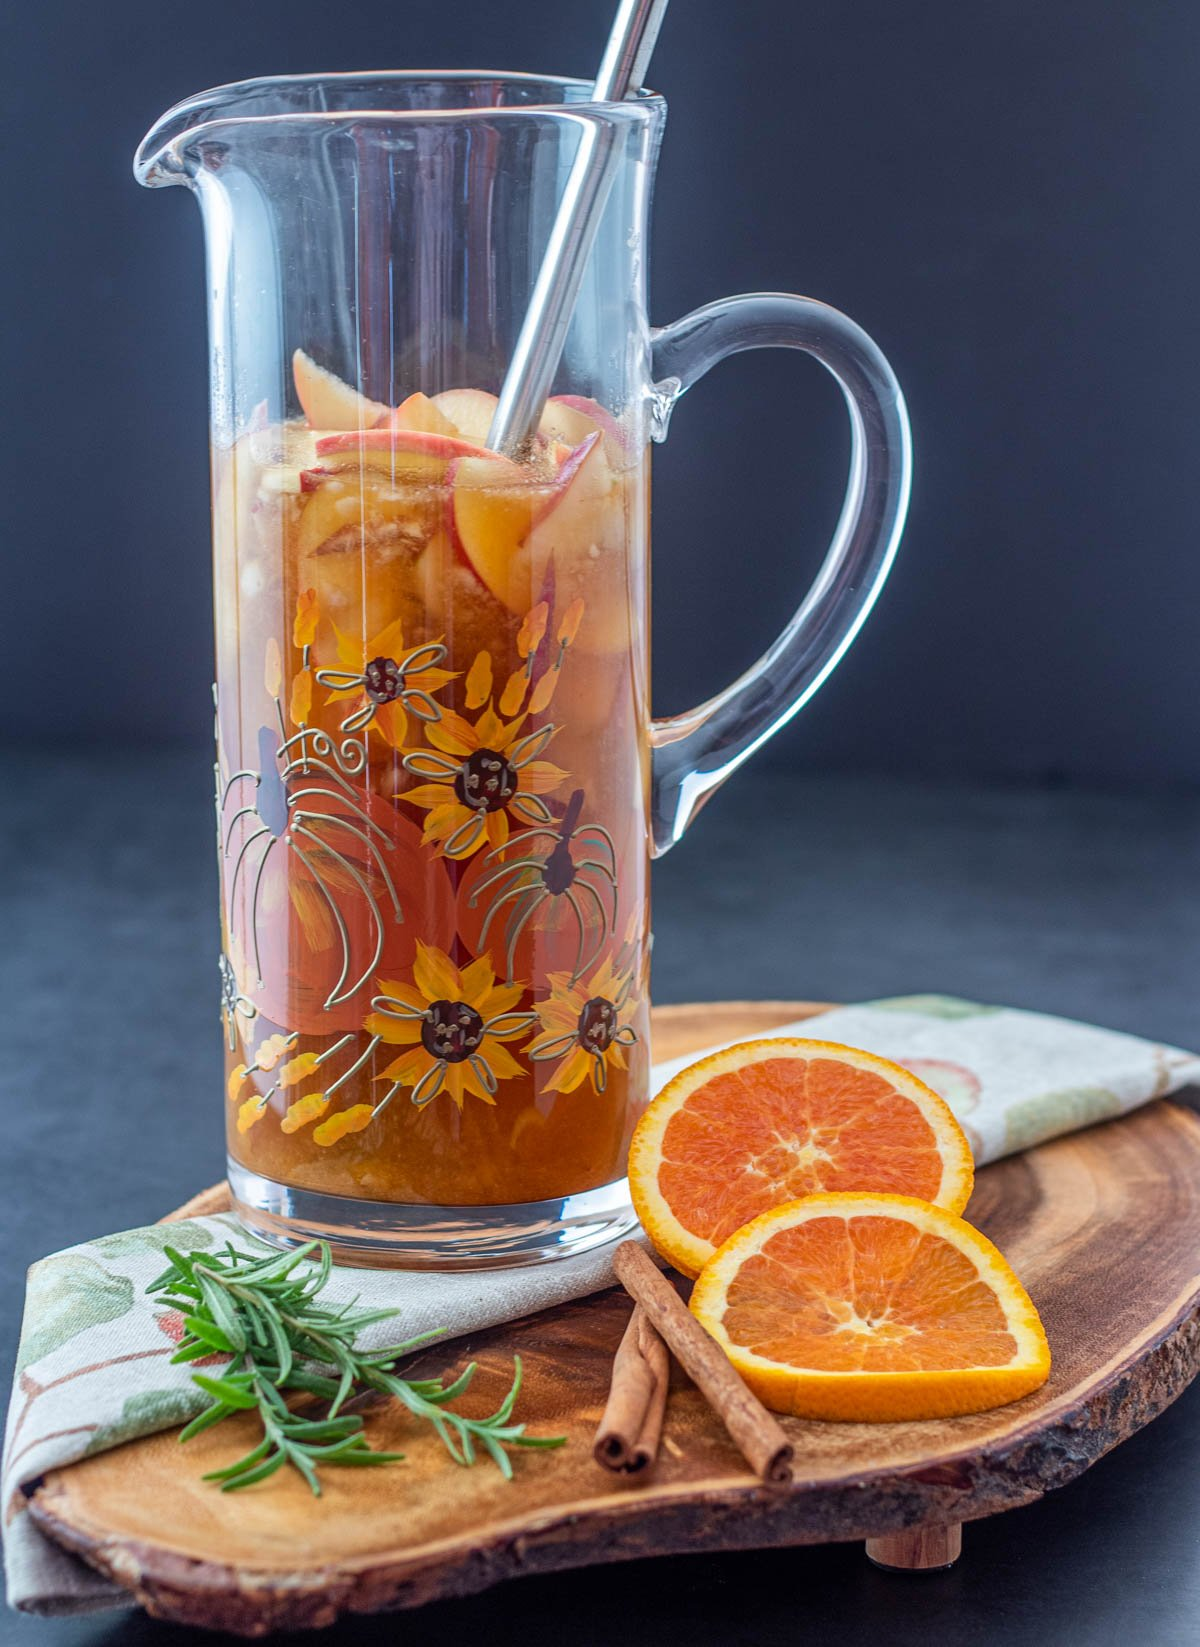 A glass pitcher with the sangria minus the ginger beer with garnishes.